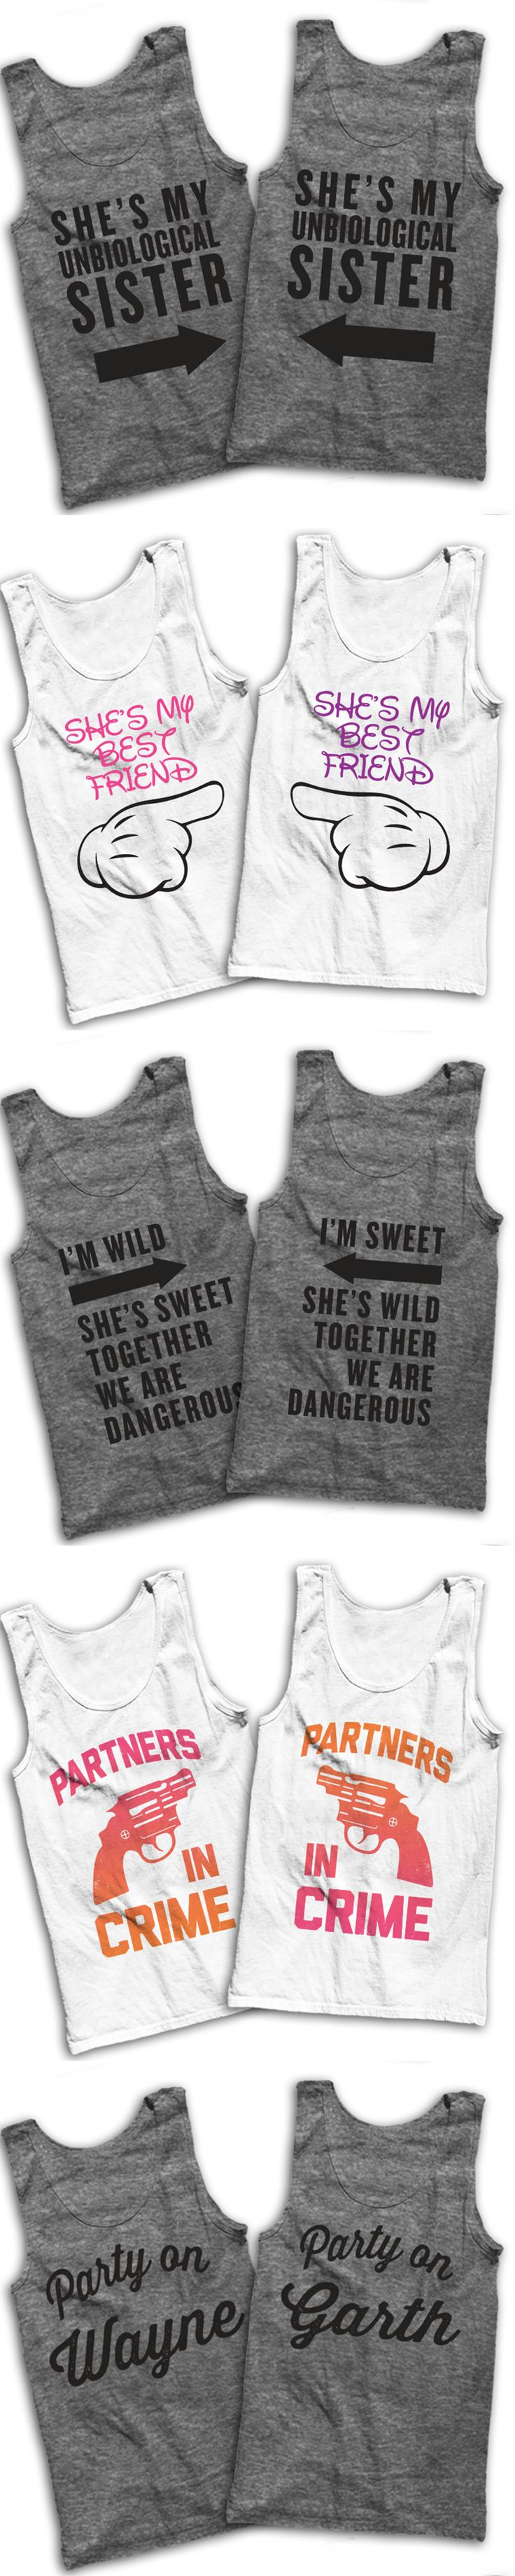 Best Friends Shirts! By Awesome Best Friends Tees on Etsy. We've got hundreds of matching designs for you and your bestie, and hundreds more from great gifts to simply sarcastic. Check out all our shirts and laugh out loud!